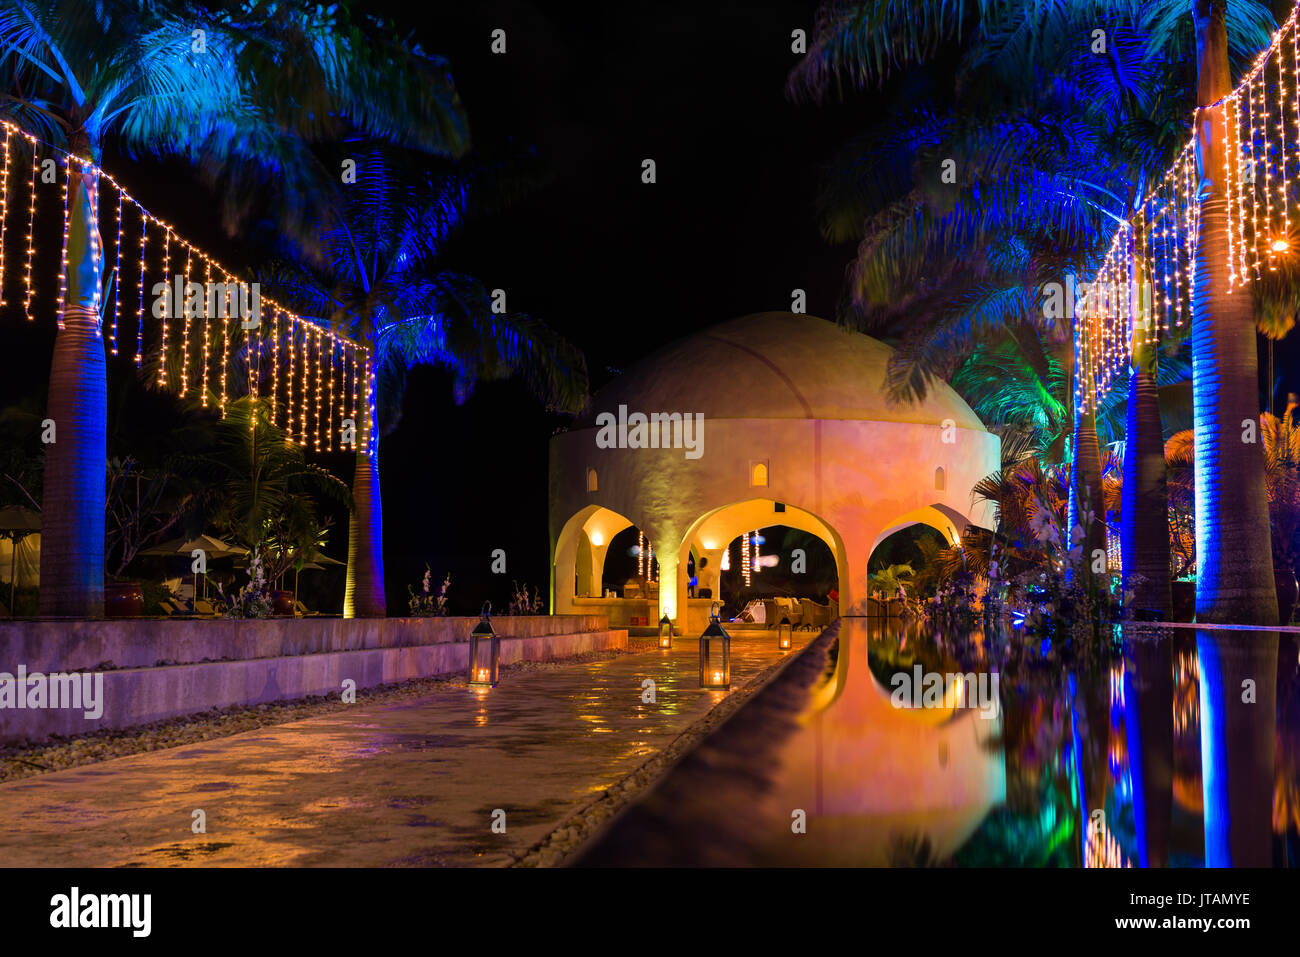 Swahili Beach Resort Exterior Reflection Pools And Dome At Night With Lights, Diani, Kenya - Stock Image